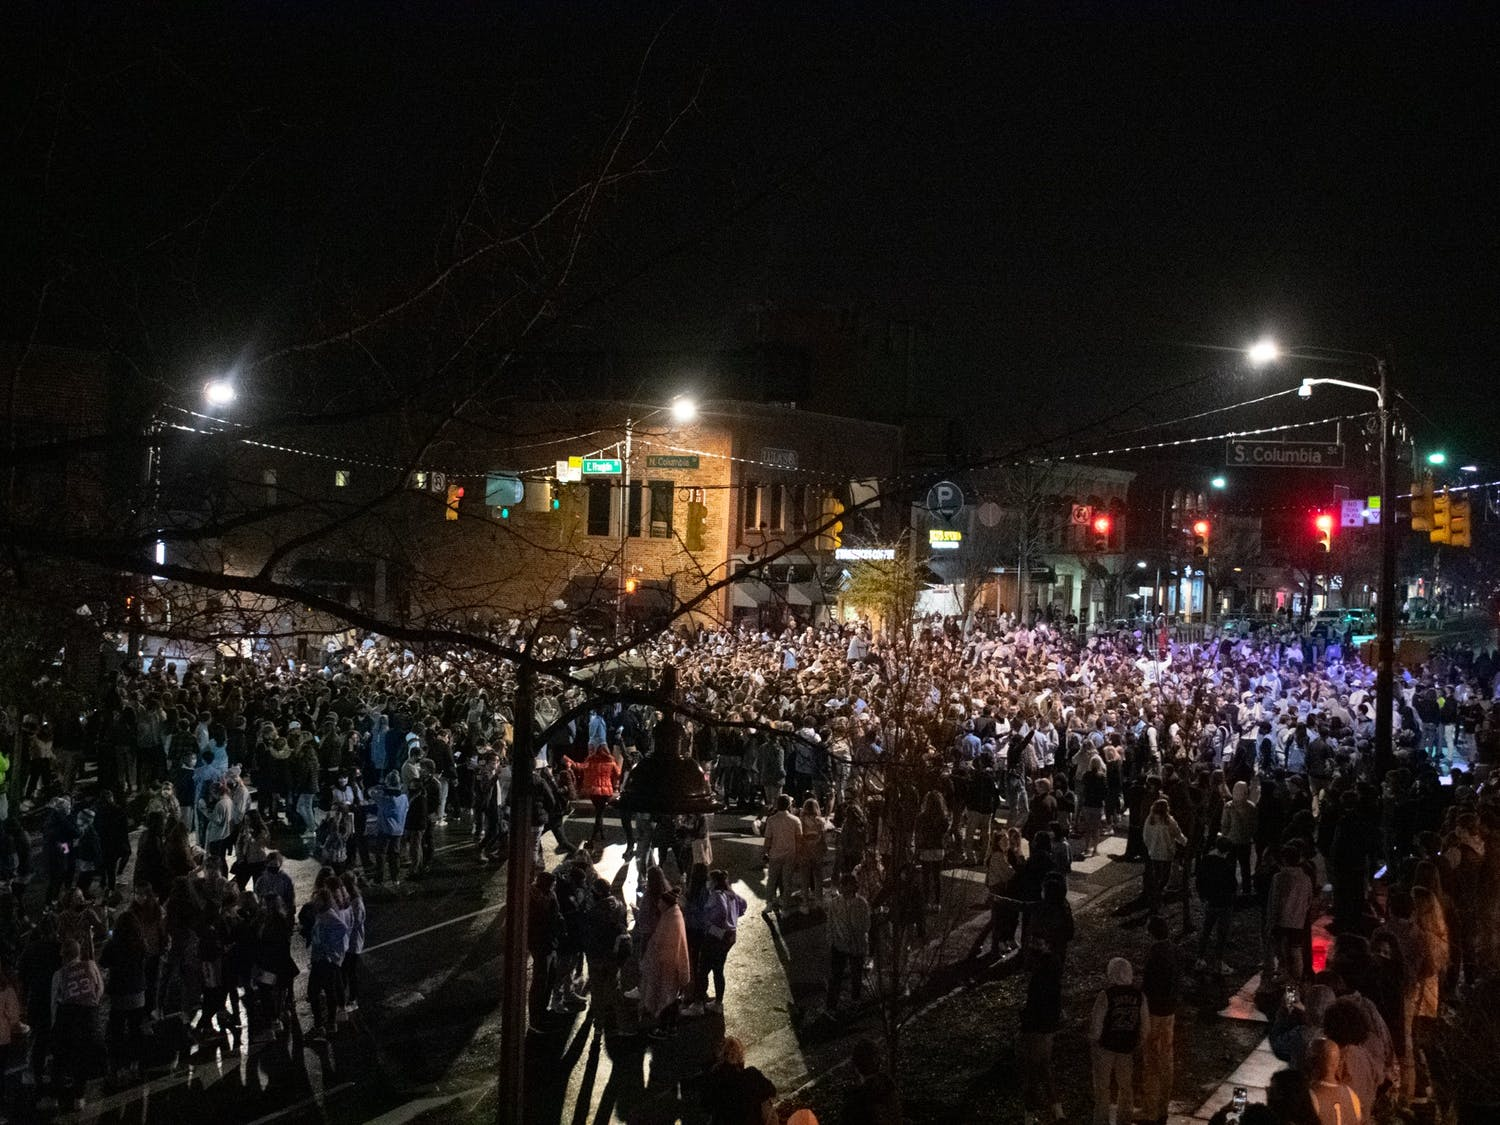 Students rush Franklin Street following UNC's 91-87 mens basketball victory over Duke. Hundreds of students gathered at the intersection of Franklin and Columbia despite COVID-19 restrictions.